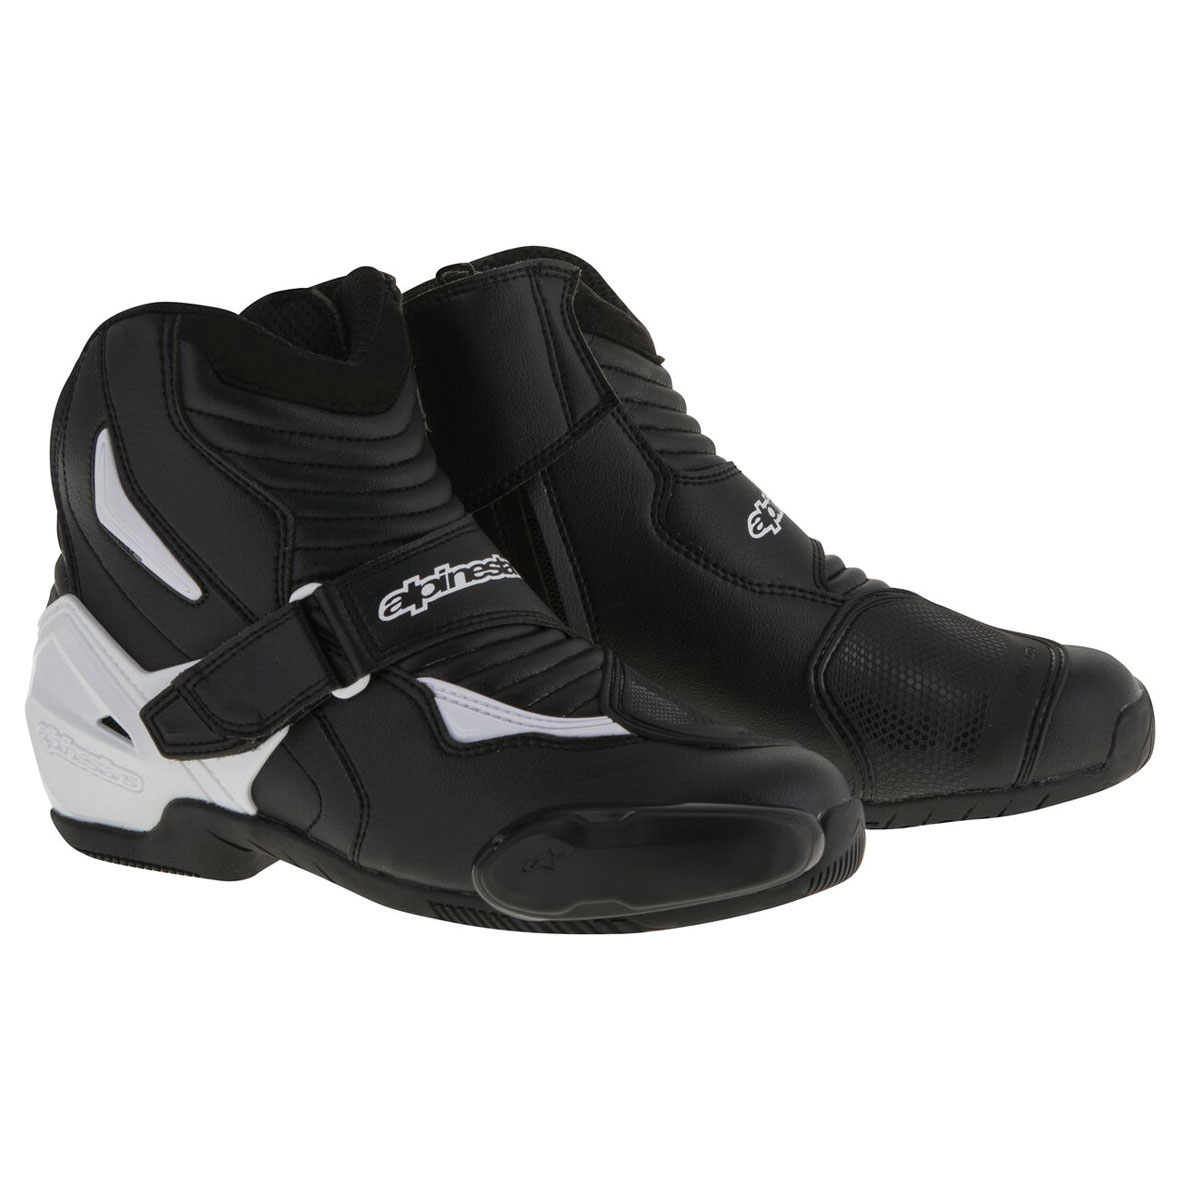 Alpinestars Men's SMX-1 R Black/White Boots